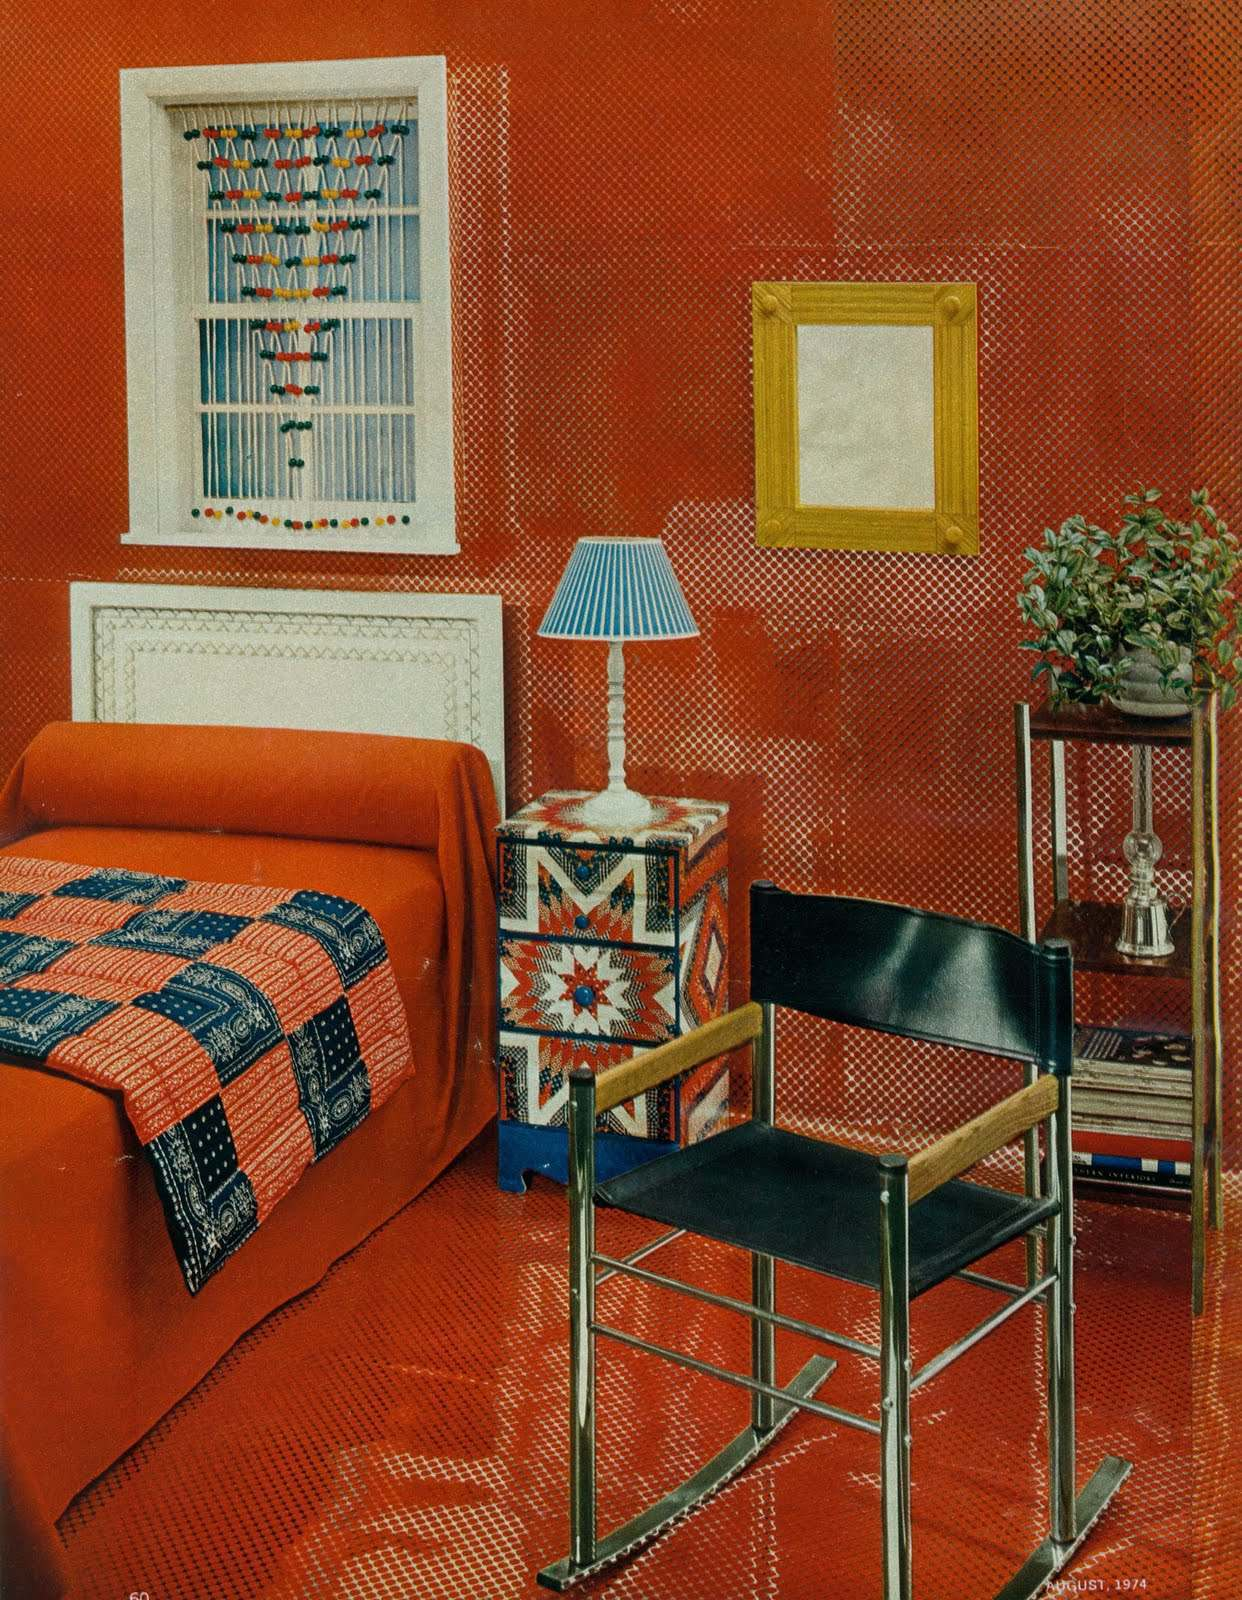 Groovy Interiors 1965 And 1974 Home D 233 Cor Flashbak